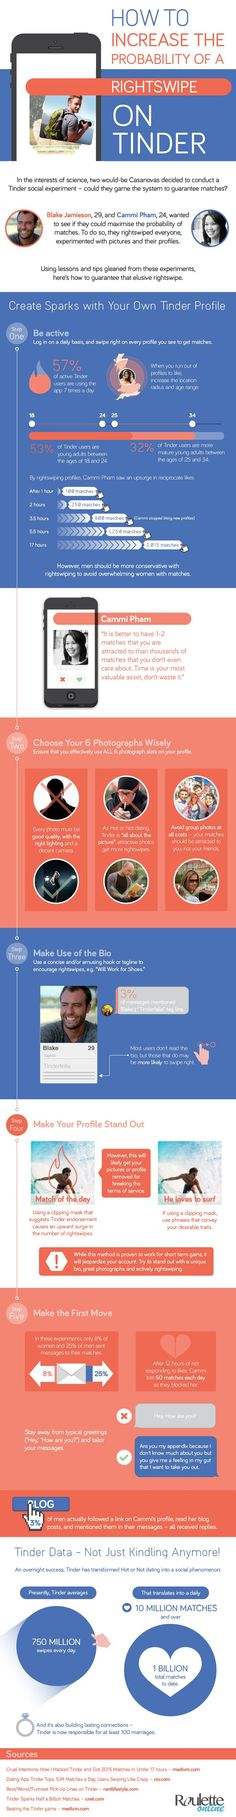 How to Increase the Probability of a Right Swipe on Tinder #infographic #Tinder #HowTo #Dating